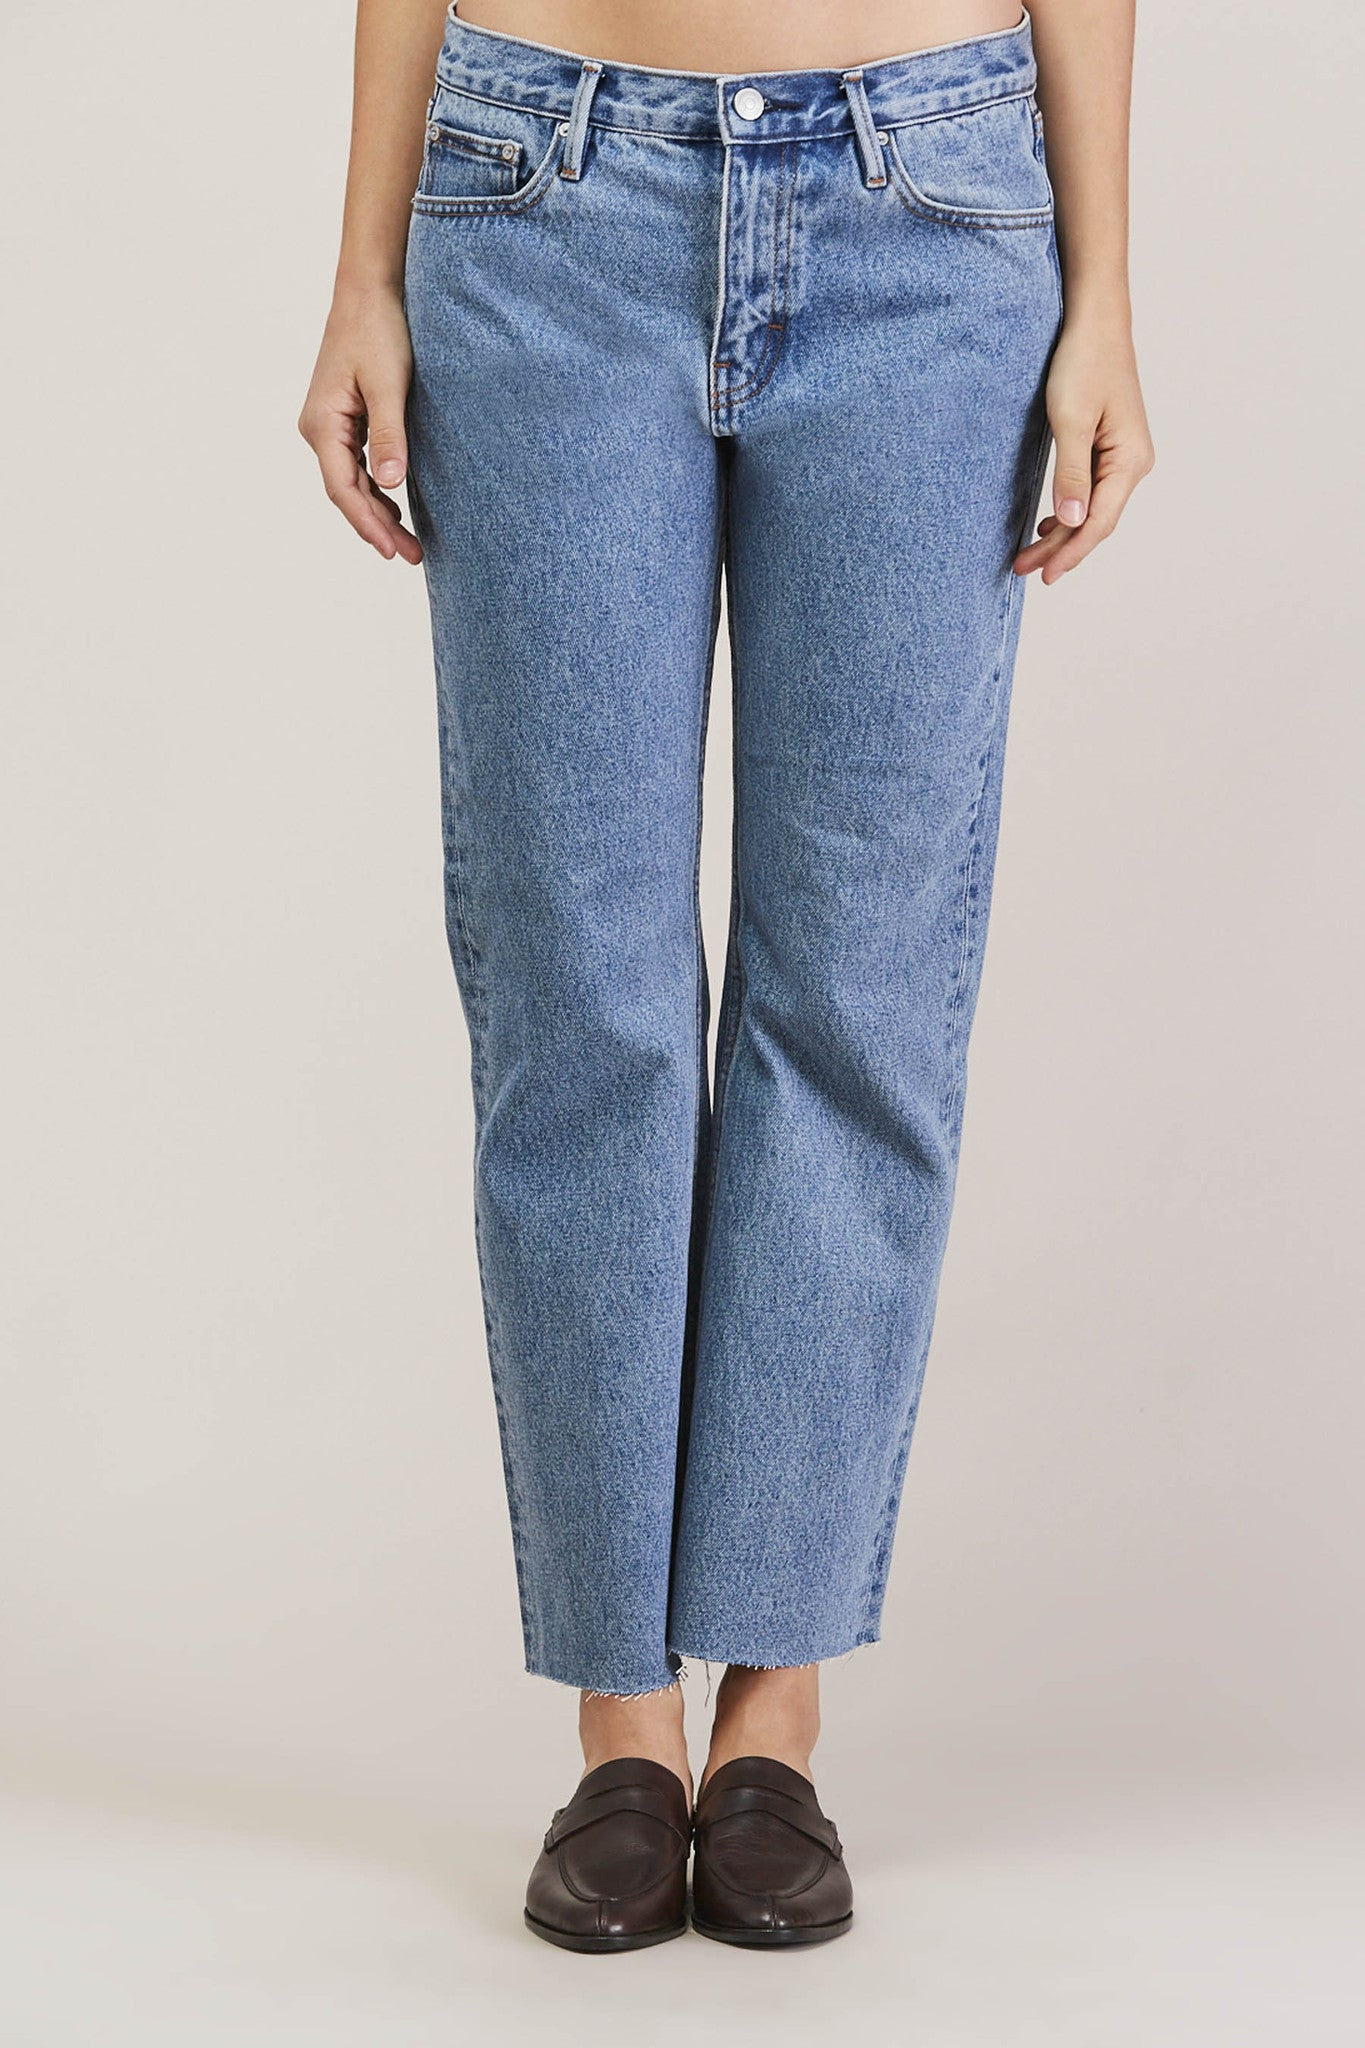 Melody Cropped Boot Cut, Steinway by EARNEST SEWN @ Kick Pleat - 1